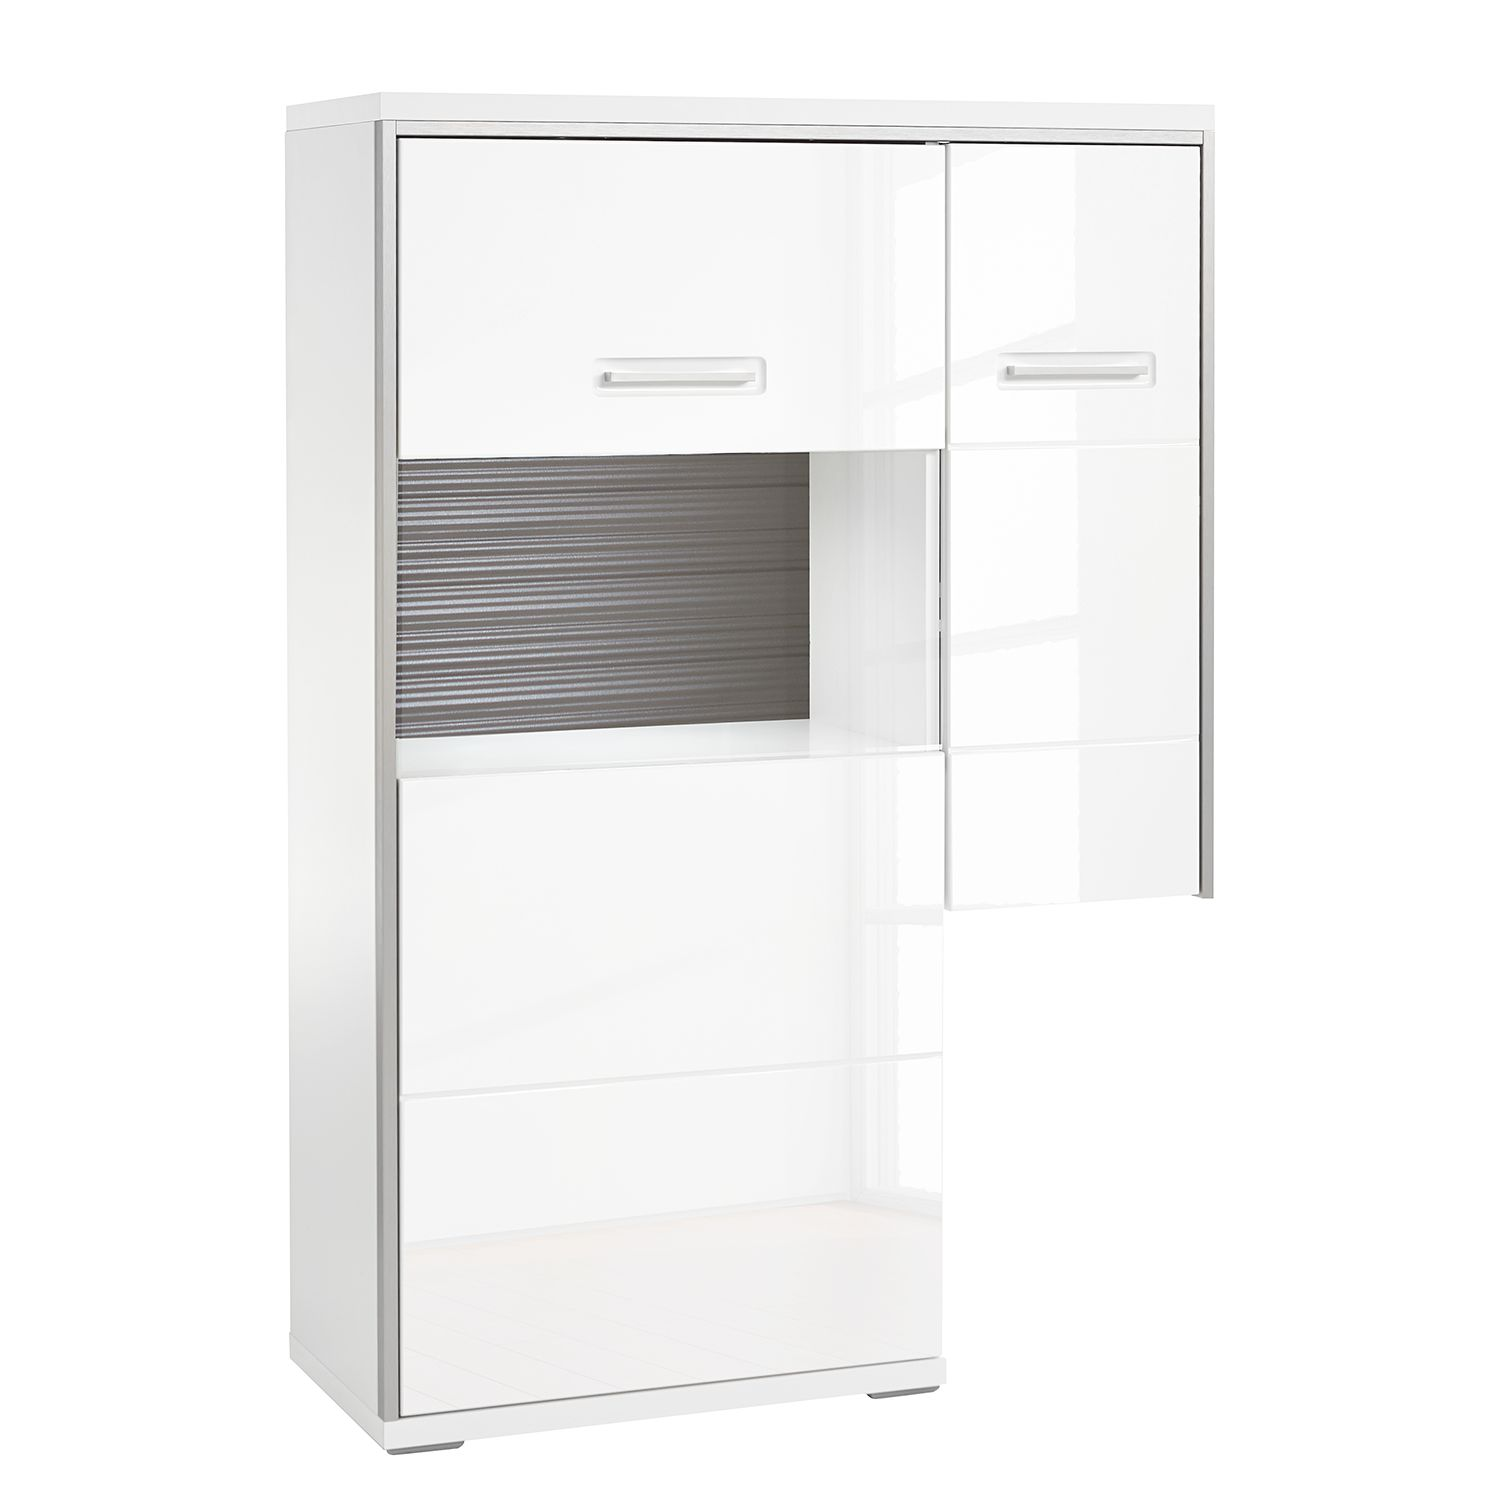 Highboard Kushiro III - Hochglanz Weiß / Grau - Glastür links, Modoform